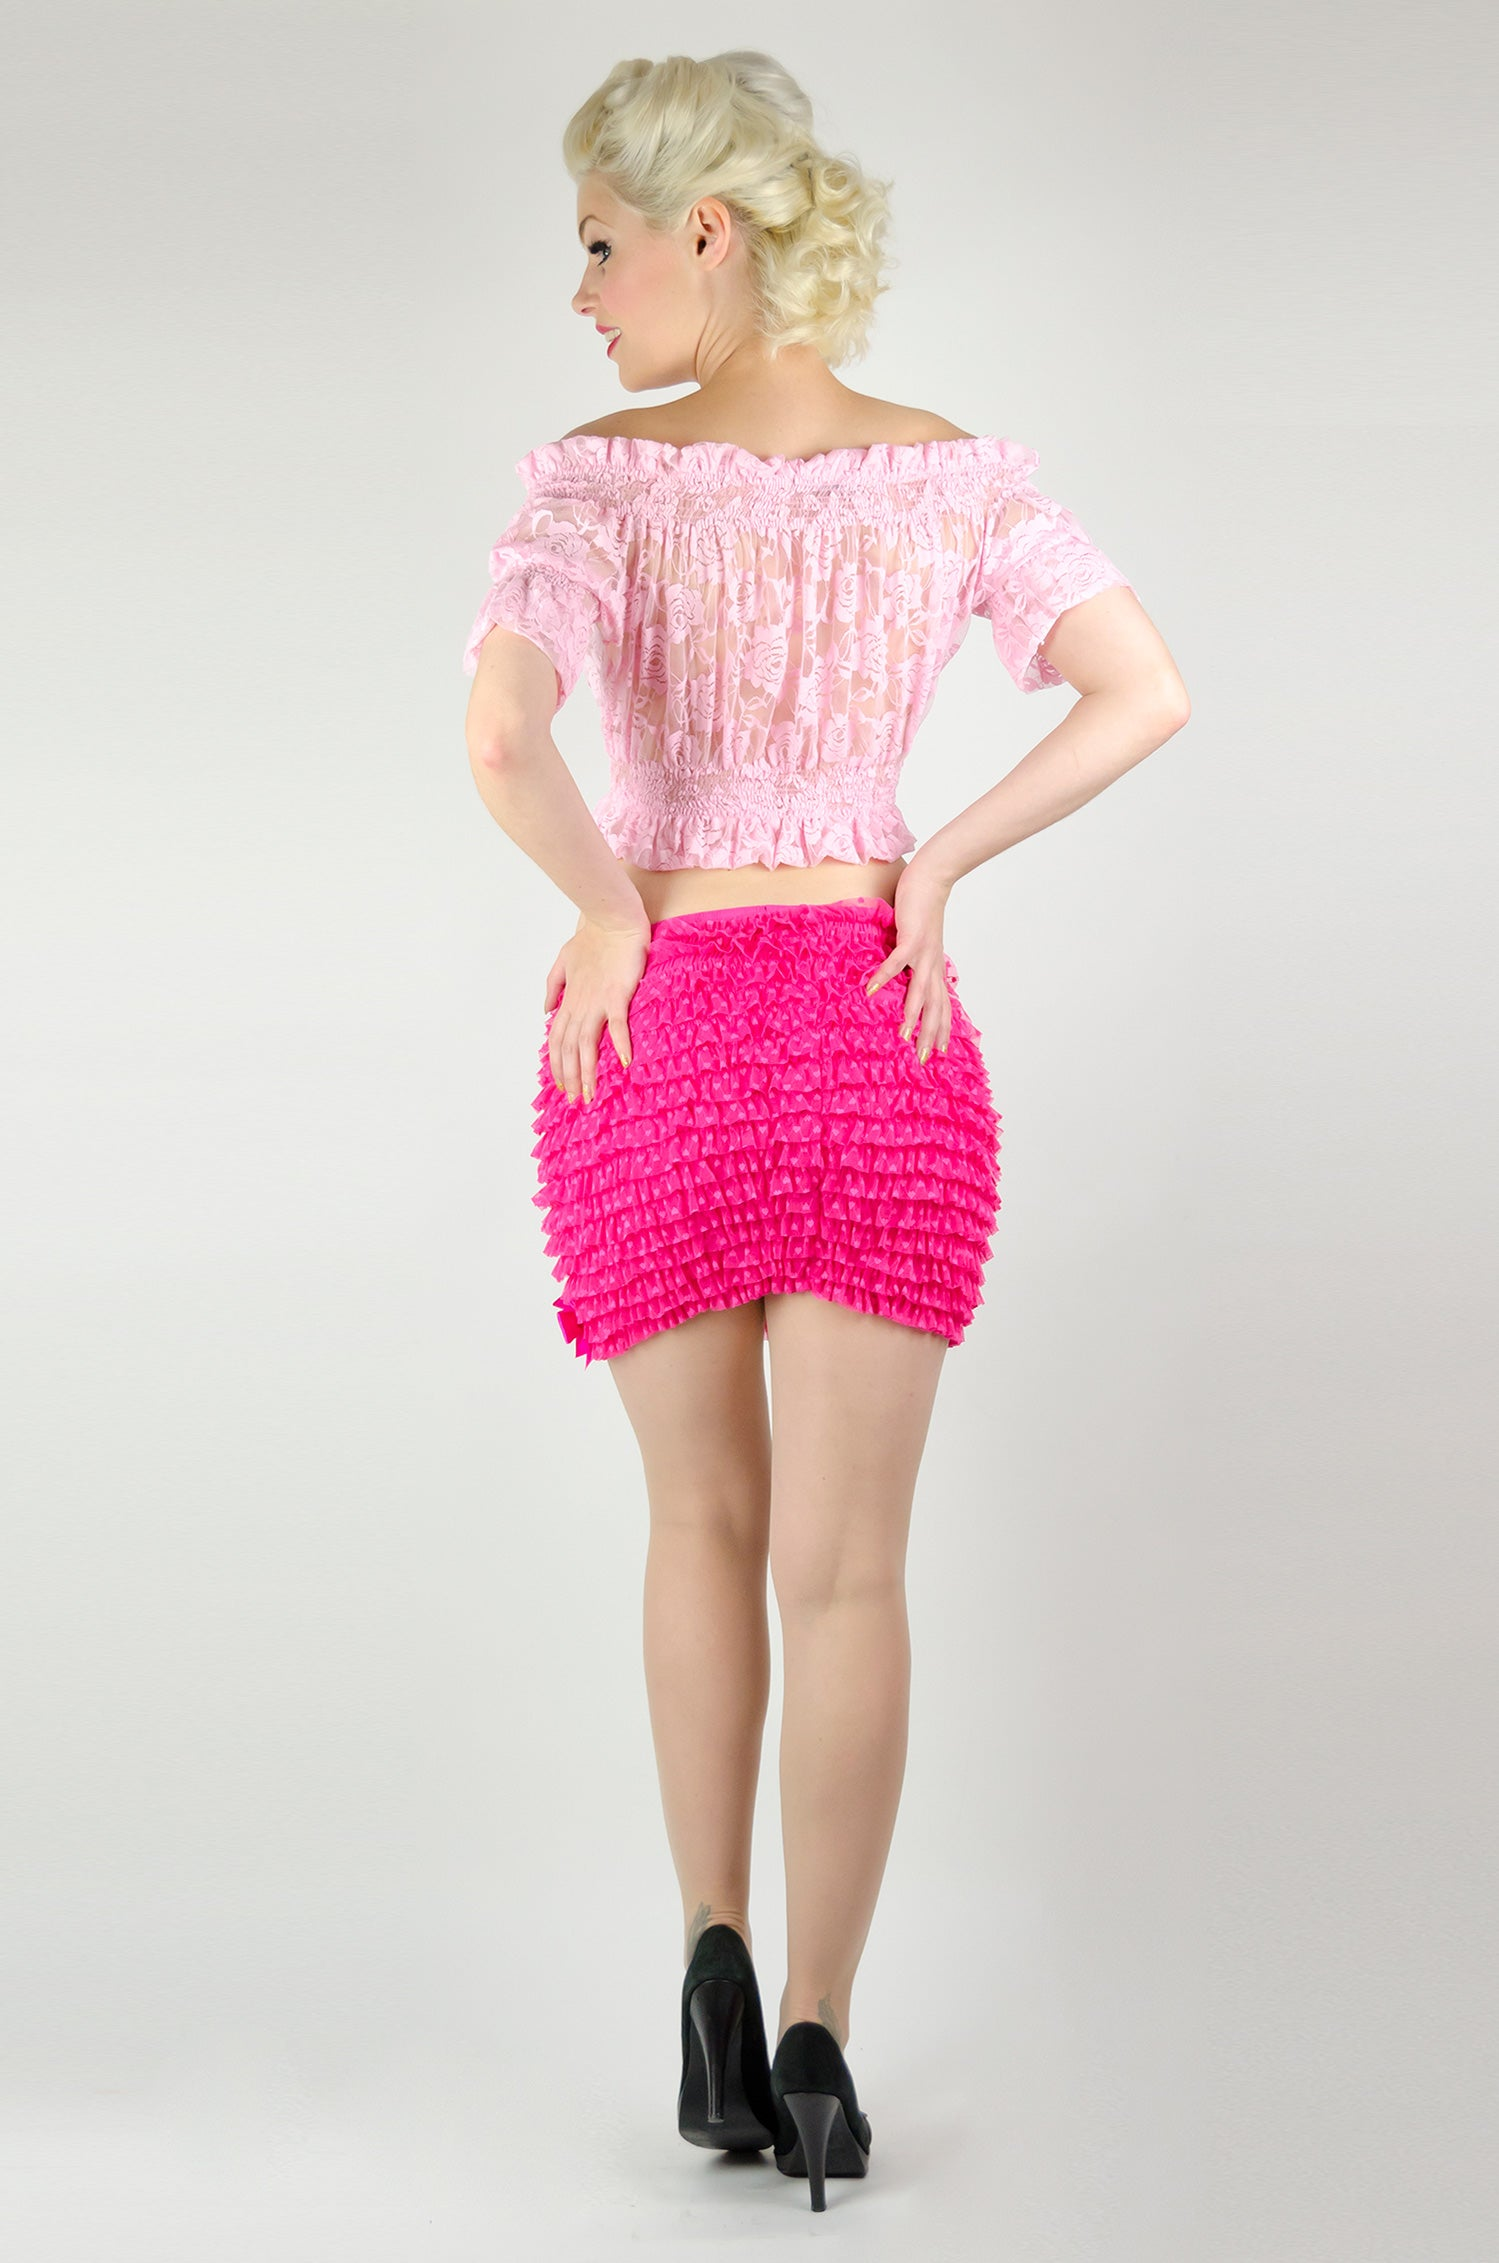 Figure-hugging frilly miniskirt